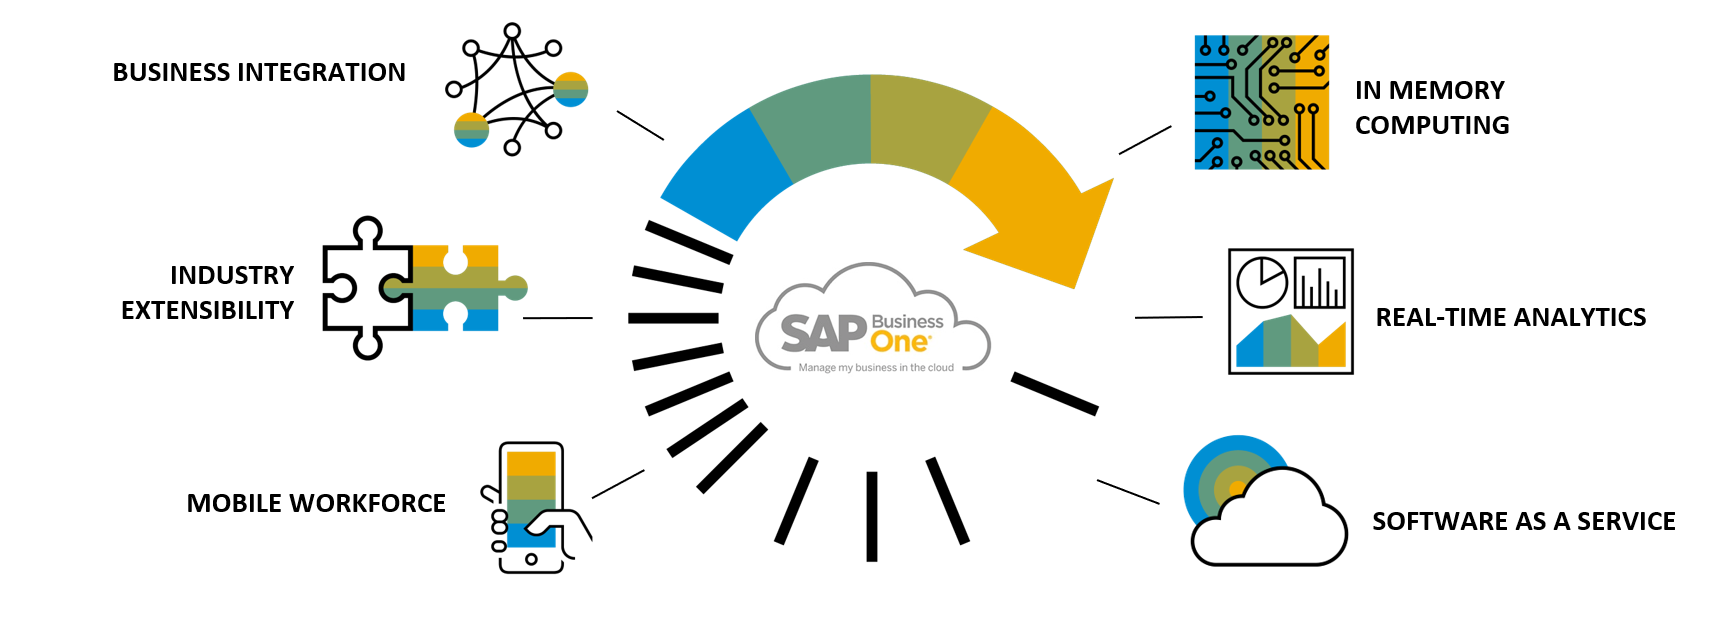 SAP Business One Cloud on HANA is your launch pad for digital transformation.